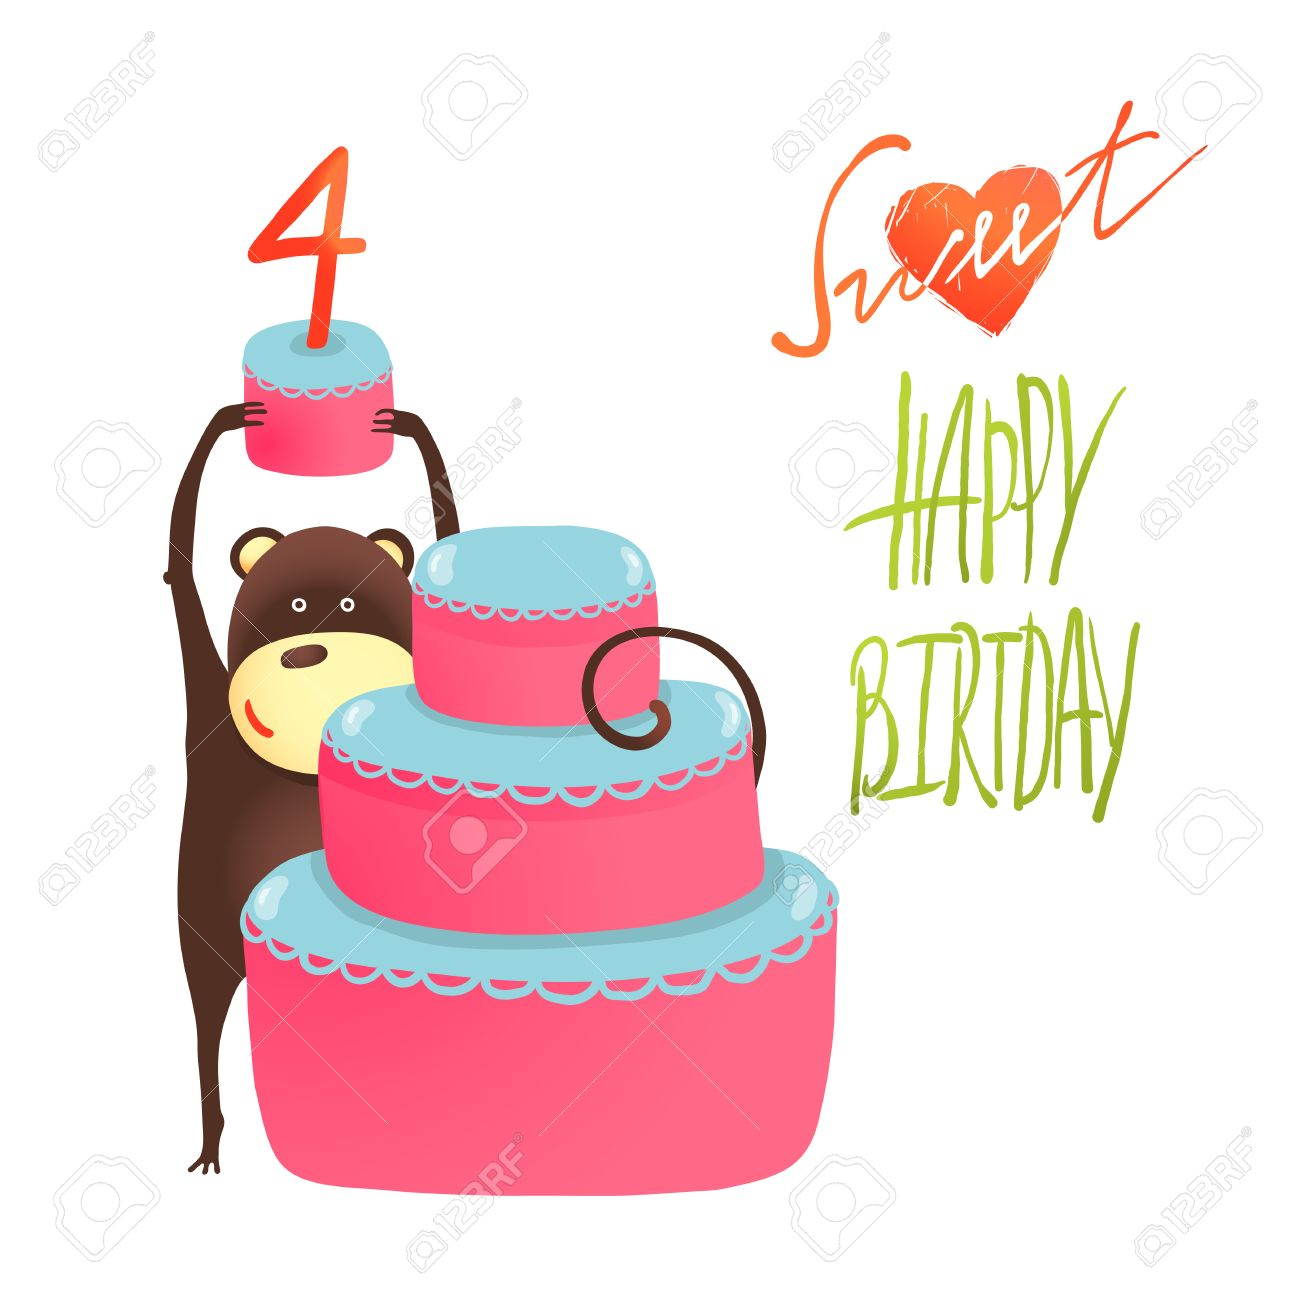 Monkey cake four years old with happy birthday greeting funny monkey cake four years old with happy birthday greeting funny monkey standing with cake m4hsunfo